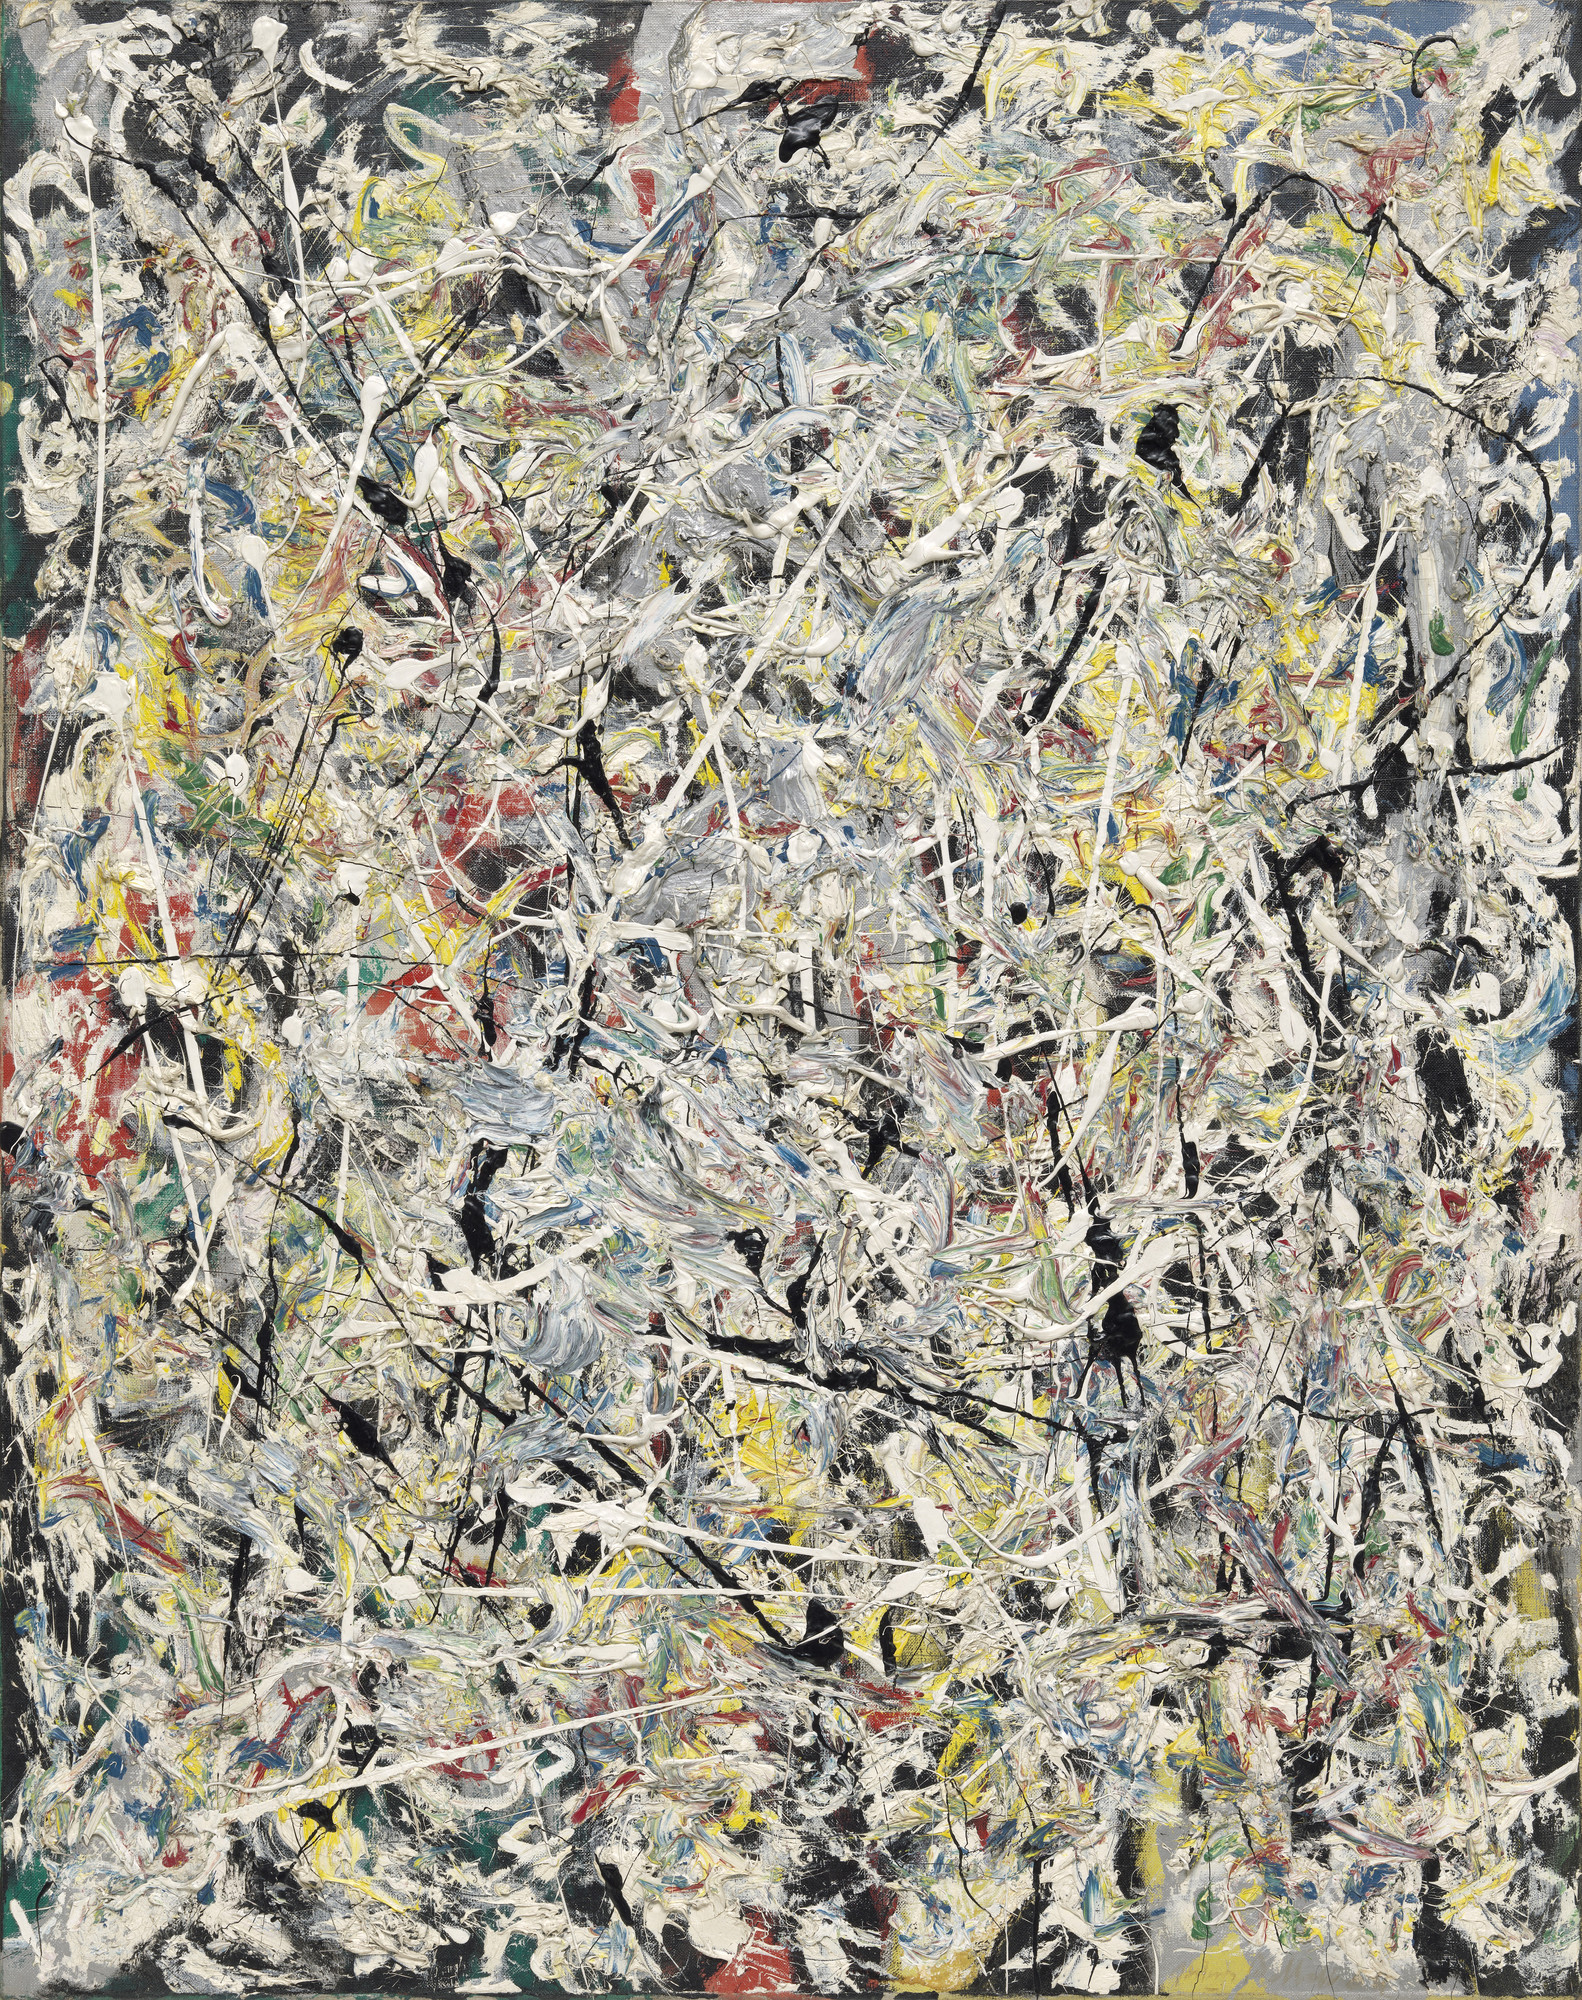 Jackson Pollock. White Light. 1954